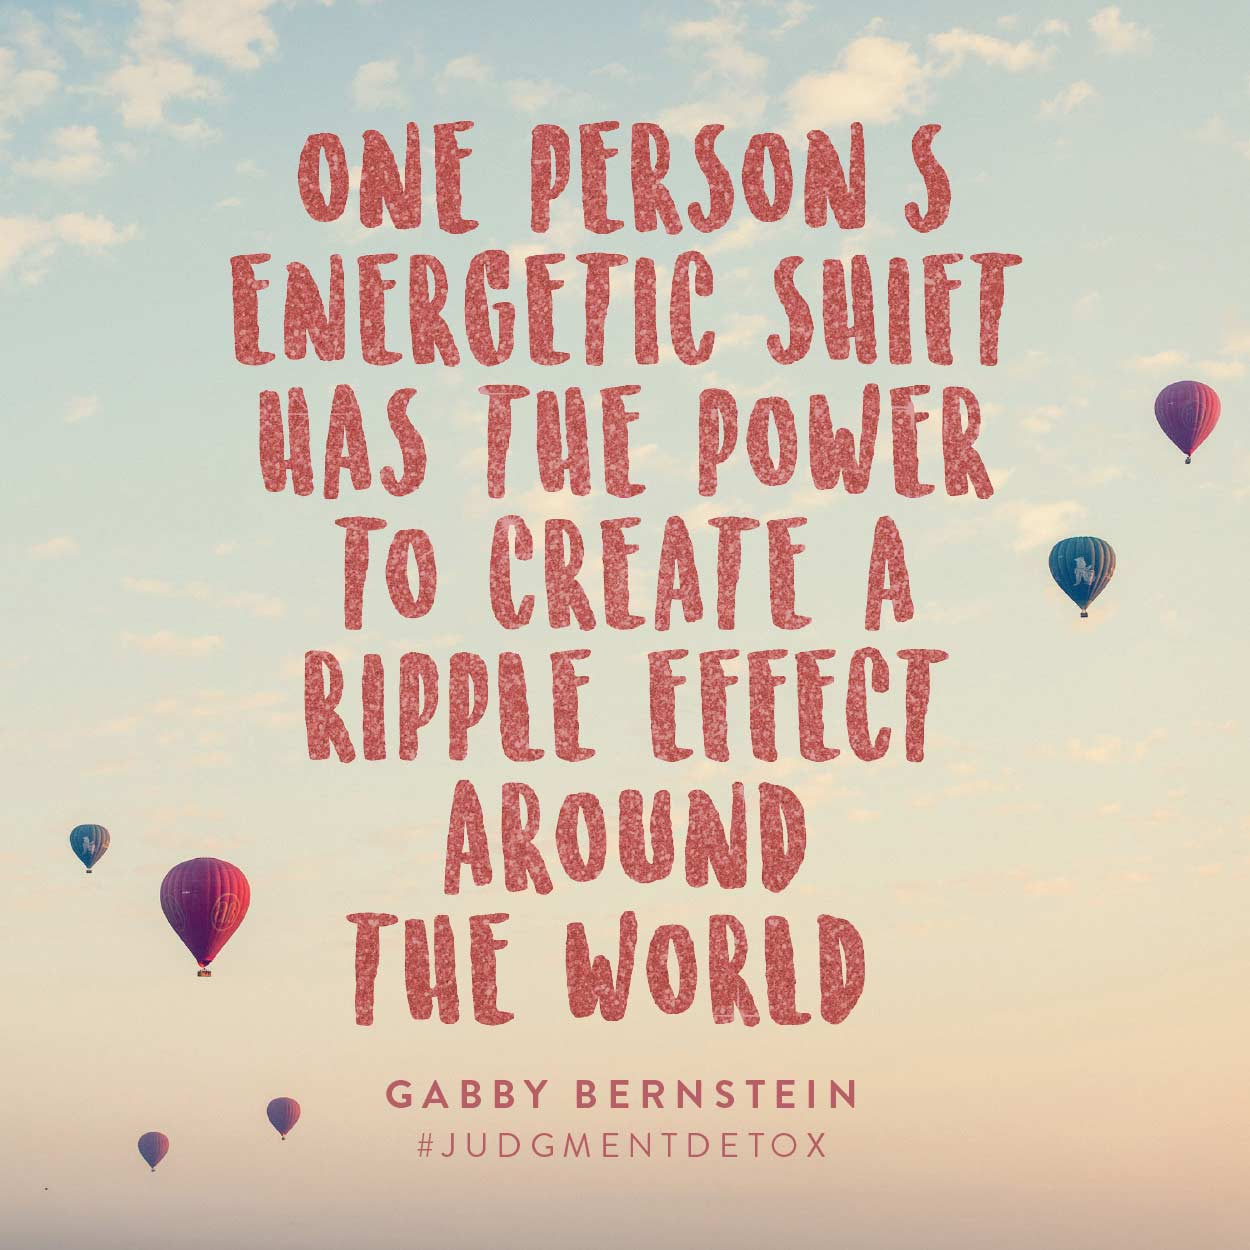 One person's energetic shift has the power to create a ripple effect around the world